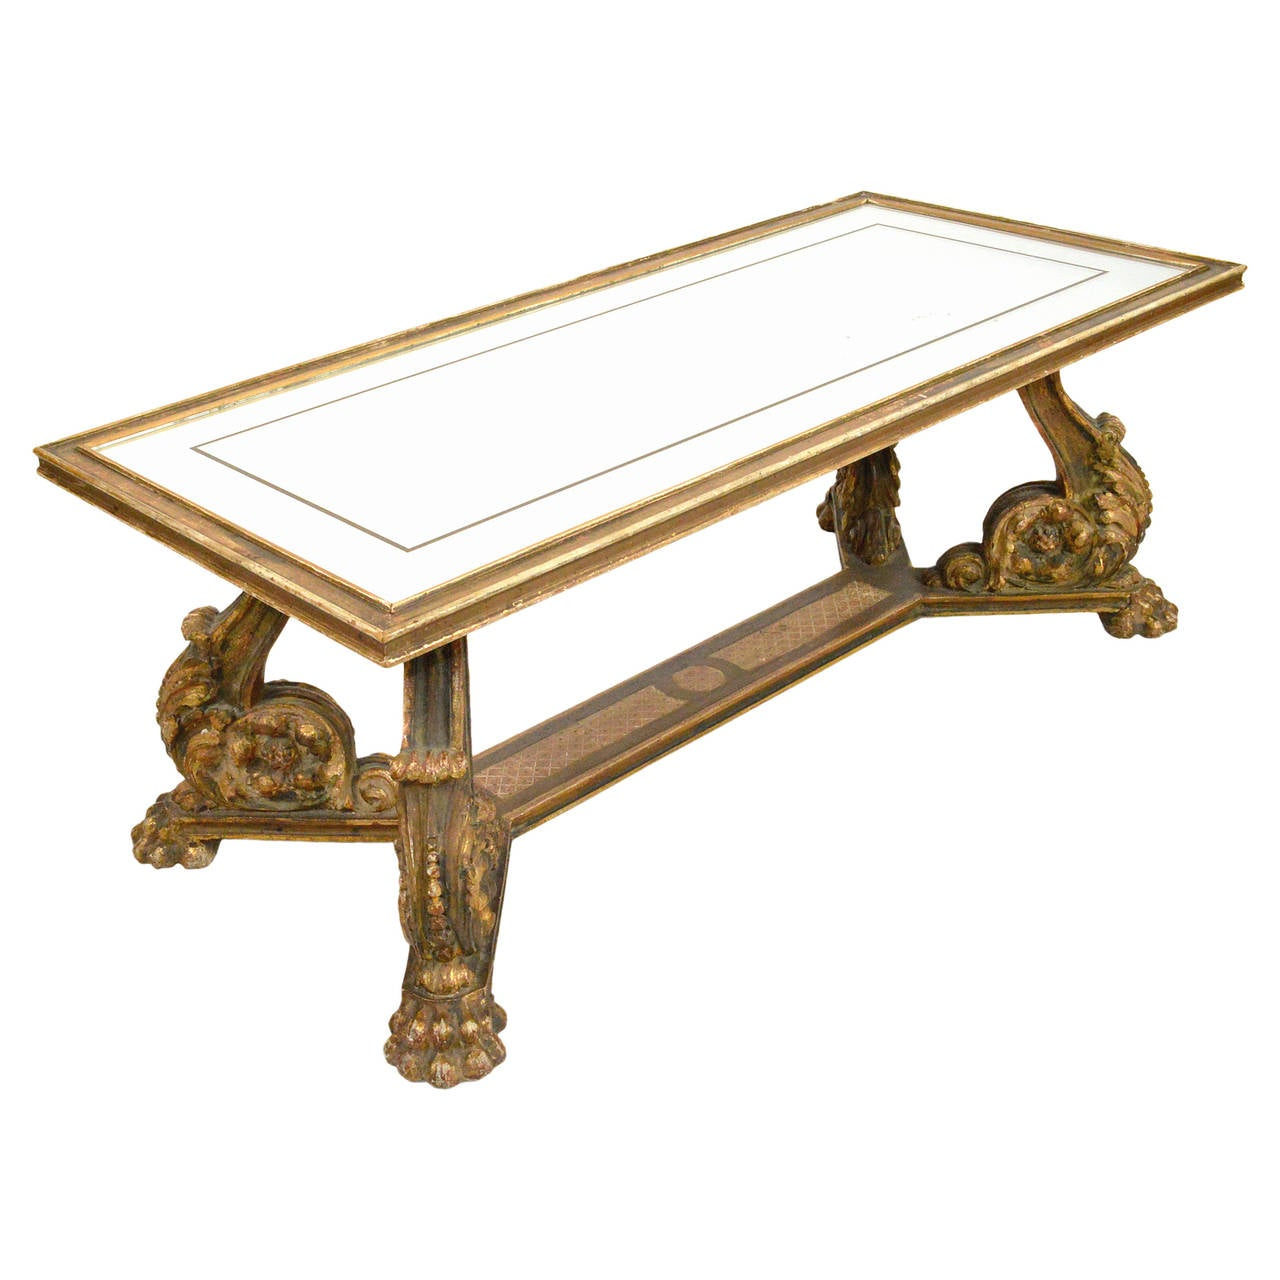 Italian Giltwood And Mirrored Glass Top Coffee Table At 1stdibs